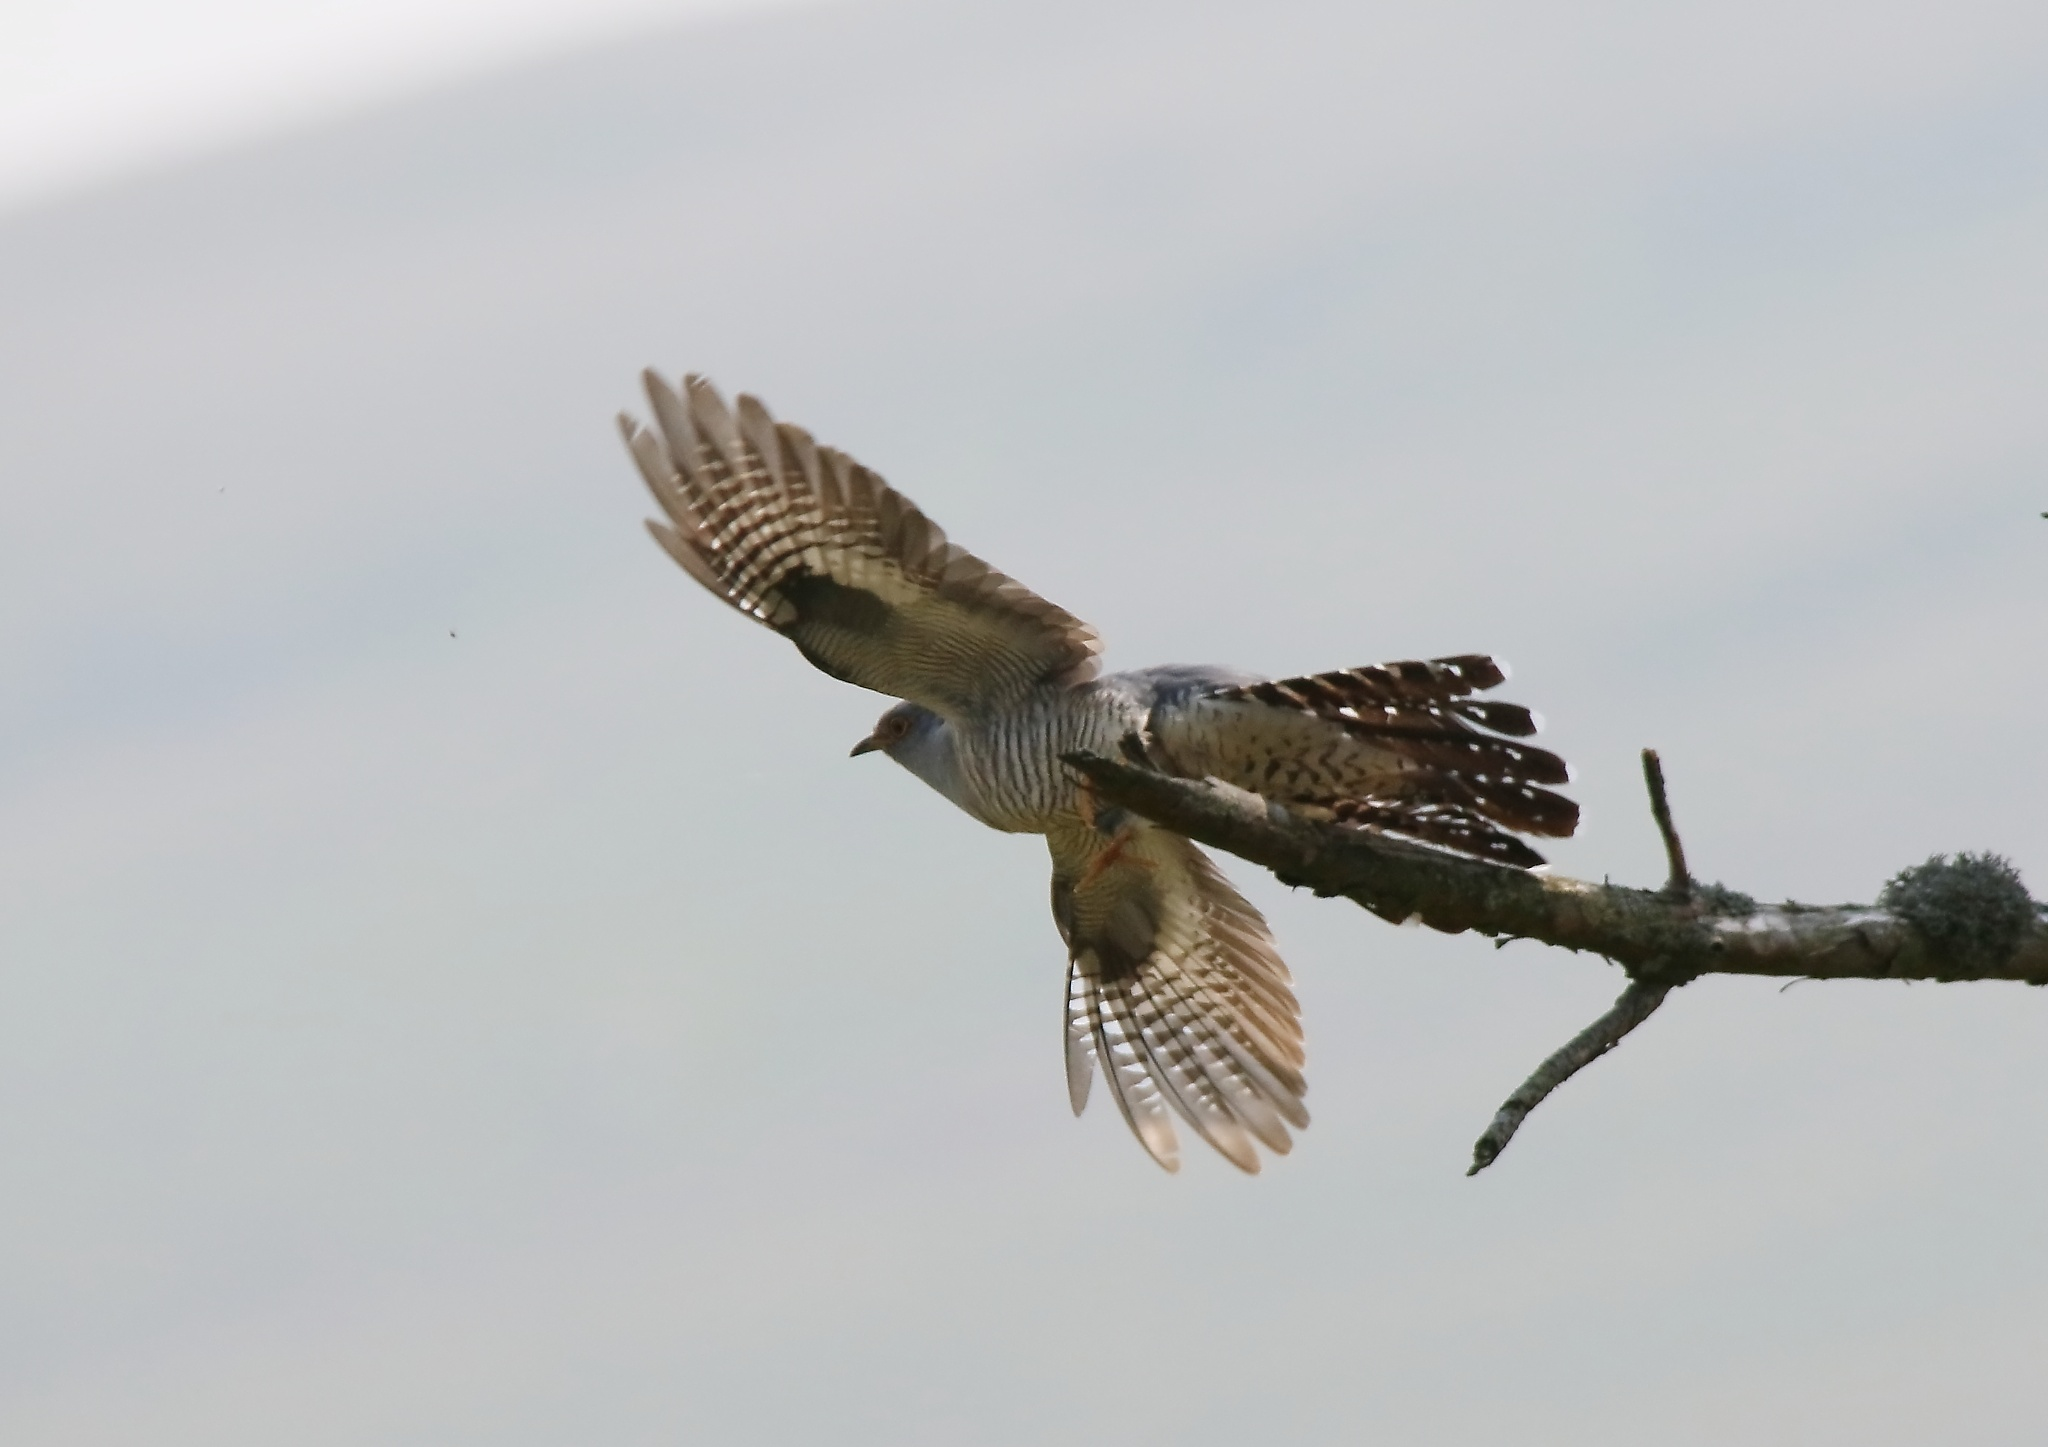 Common Cuckoo by annecotton